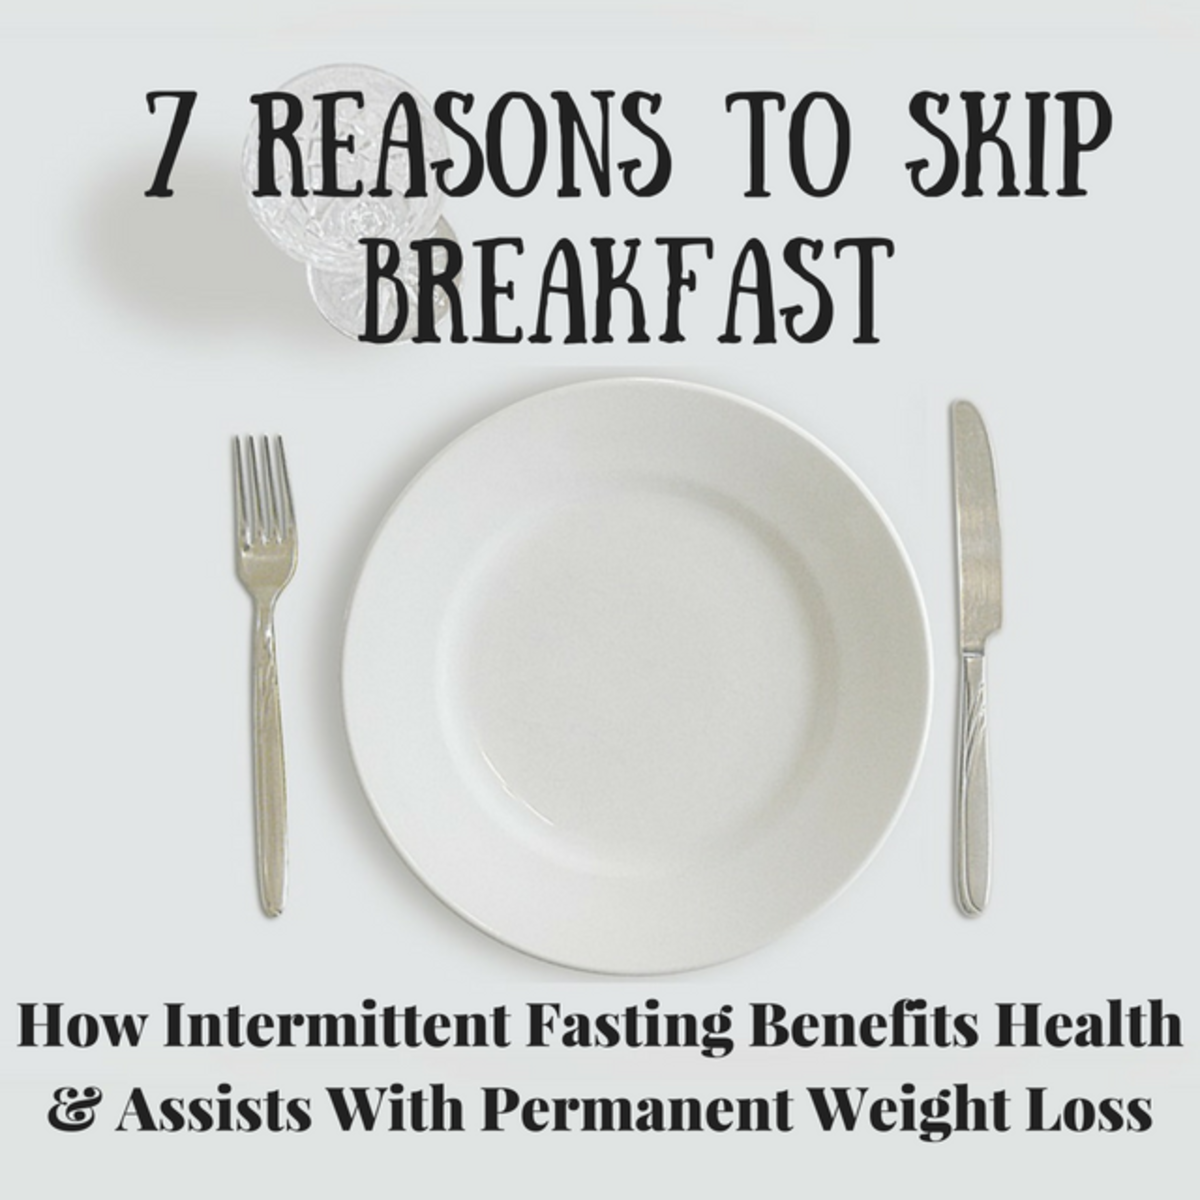 How Intermittent Fasting Benefits Your Health and Assists With Permanent Weight Loss